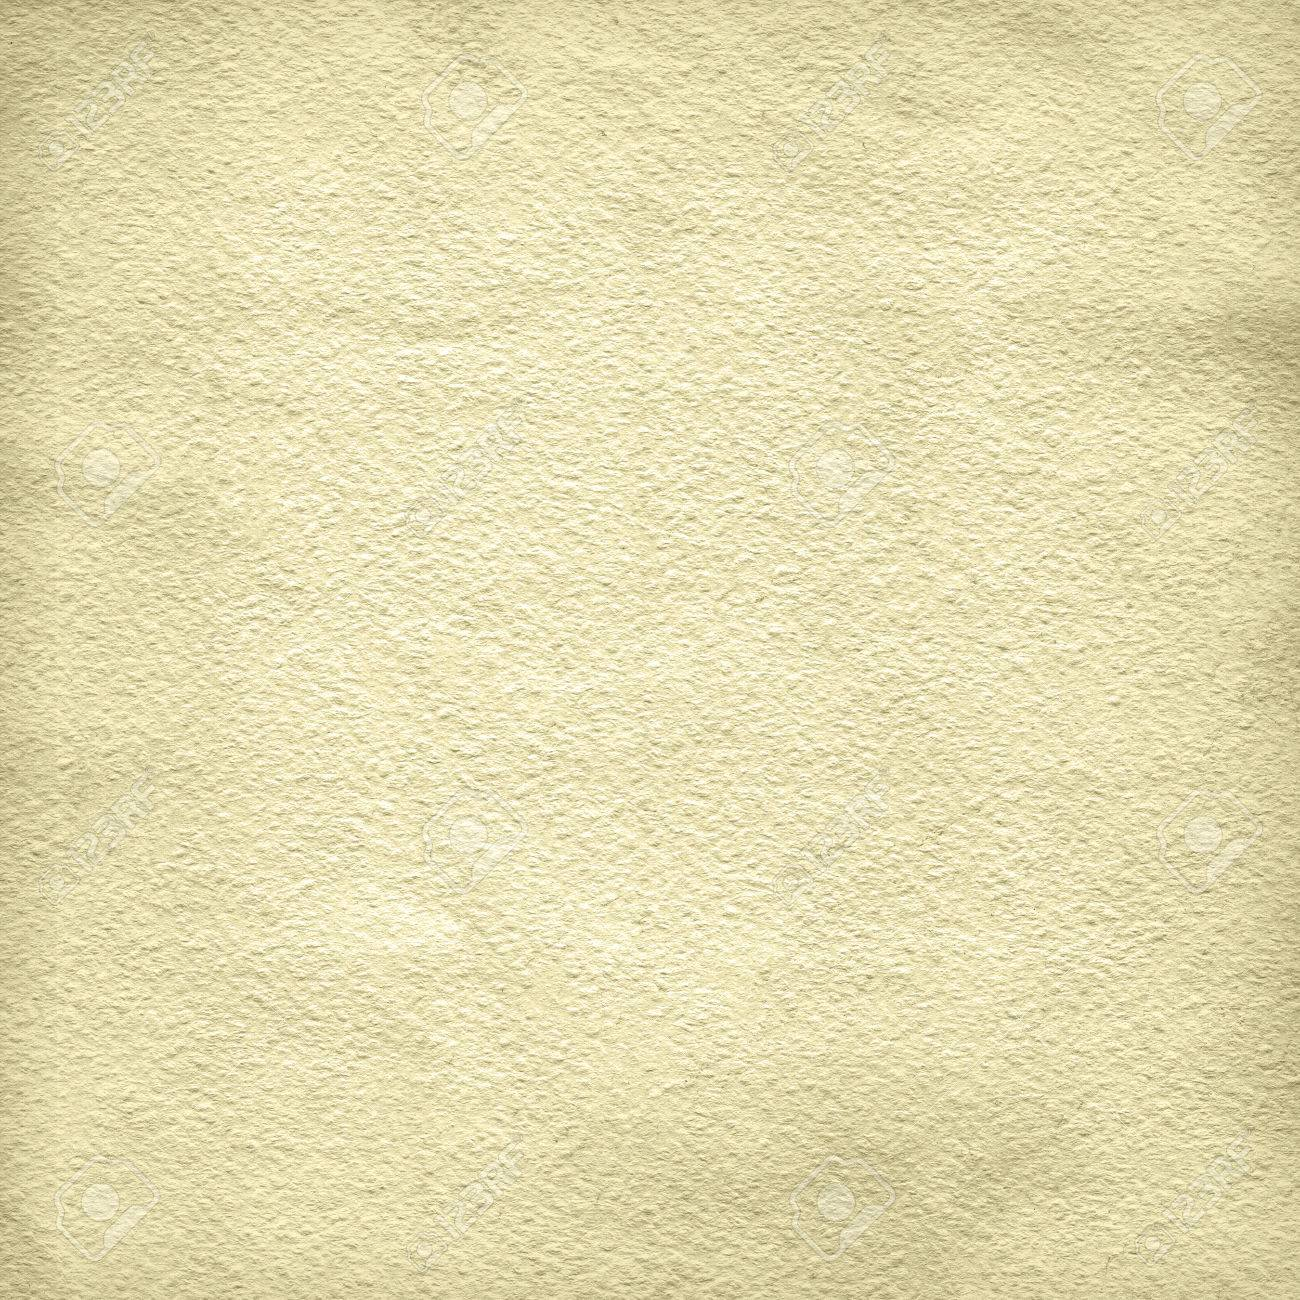 old paper texture closeup. high resolution stock photo, picture and